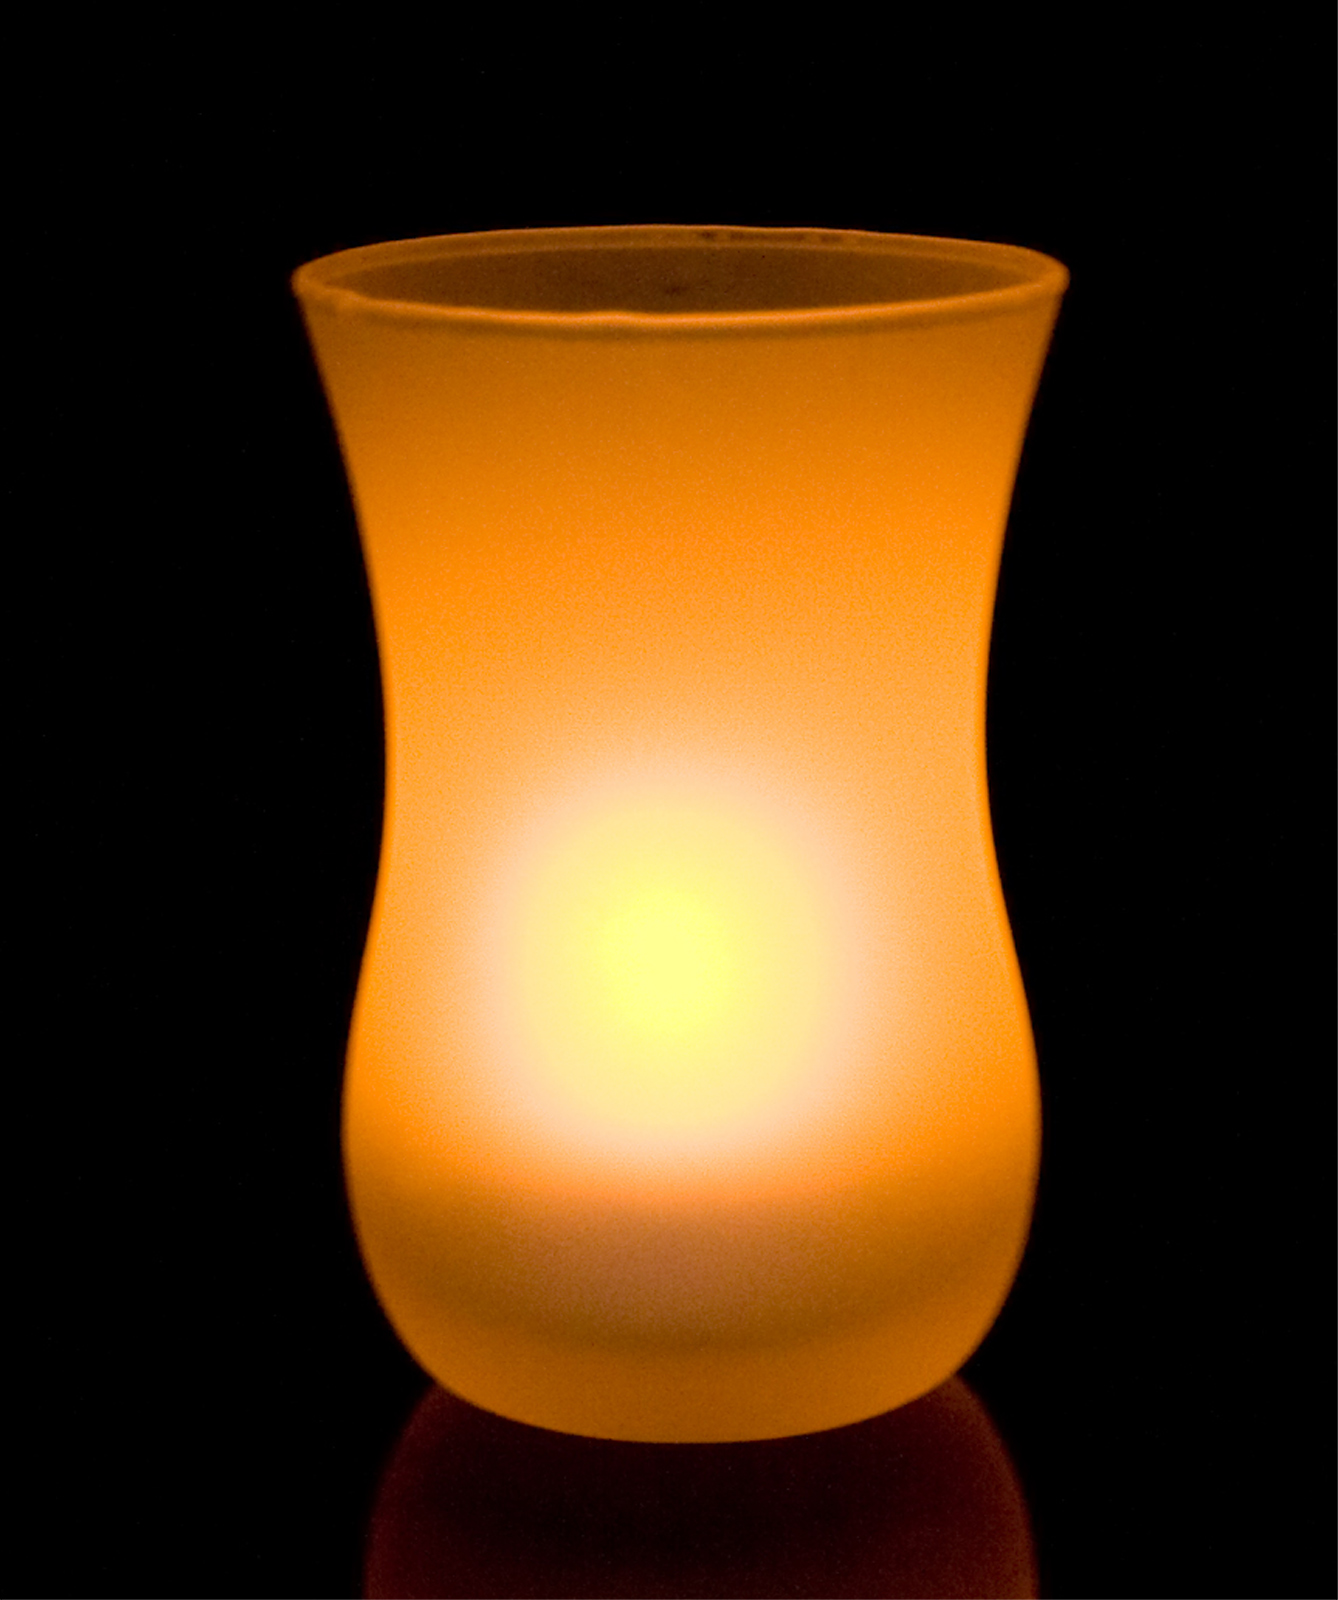 Shake On and Blow Out Flameless LED Candle with Frosted Glass Vase Holder